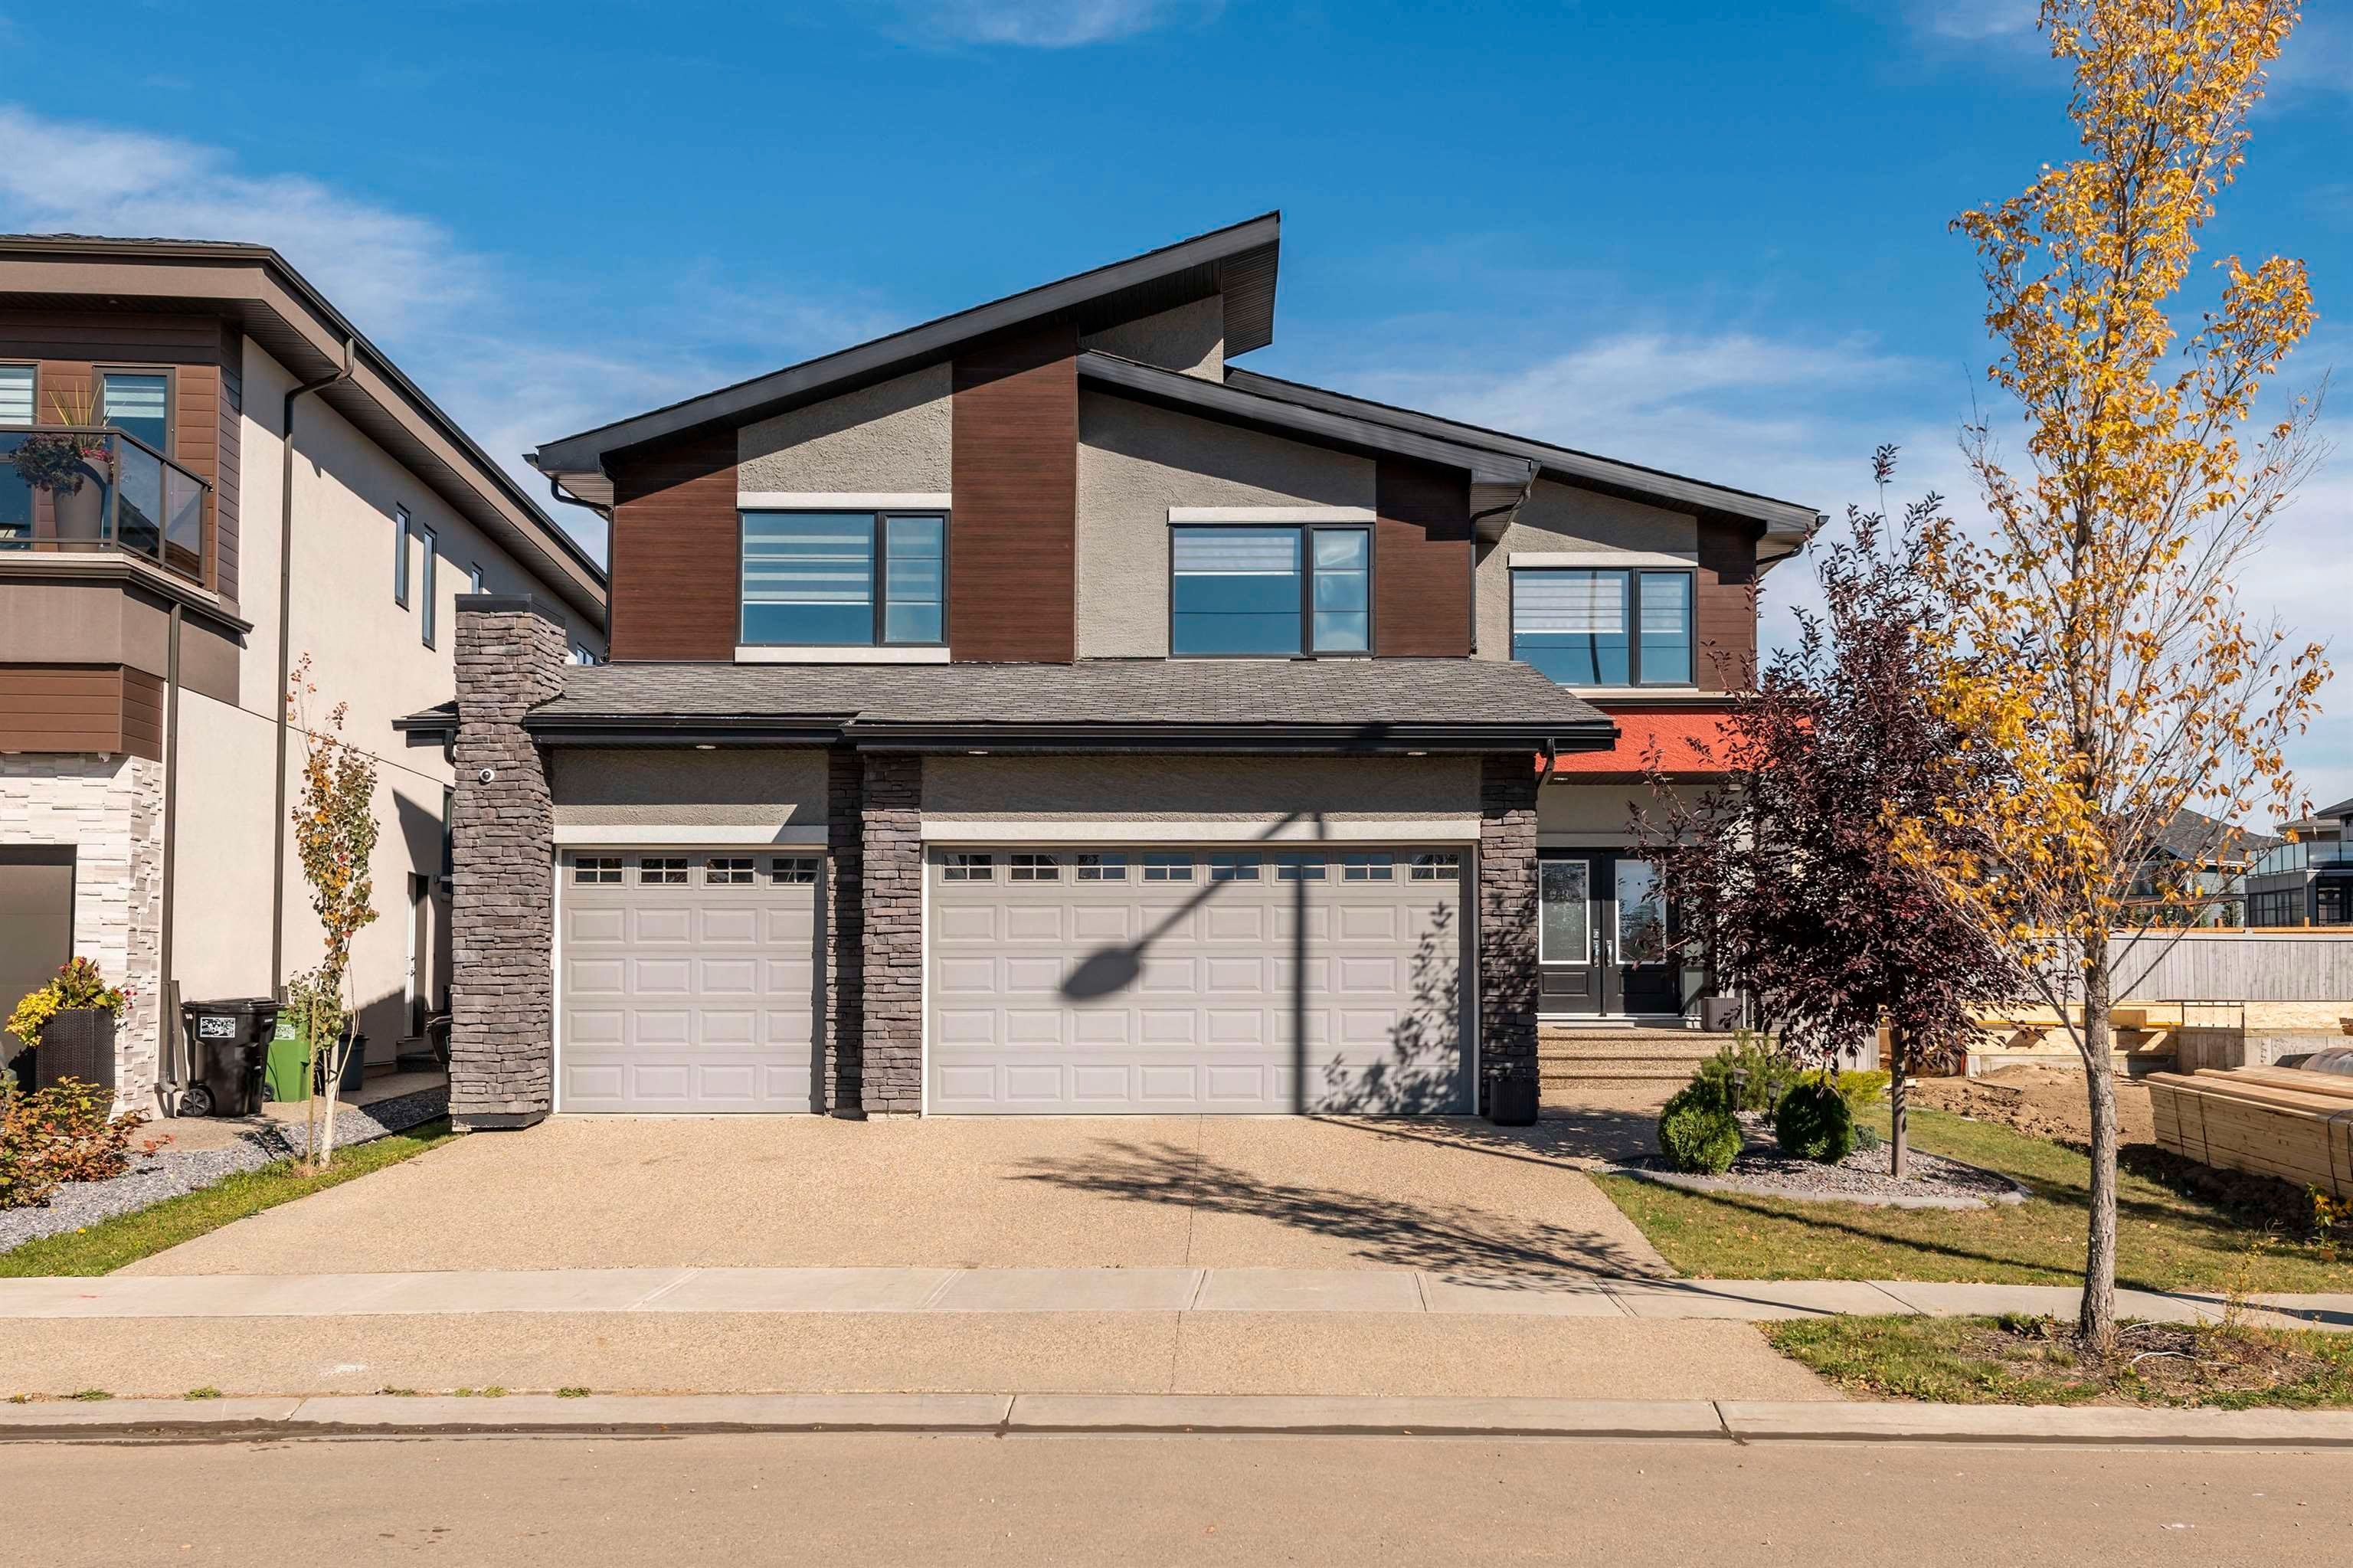 Main Photo: 3169 cameron heights Way W in Edmonton: Zone 20 House for sale : MLS®# E4264173